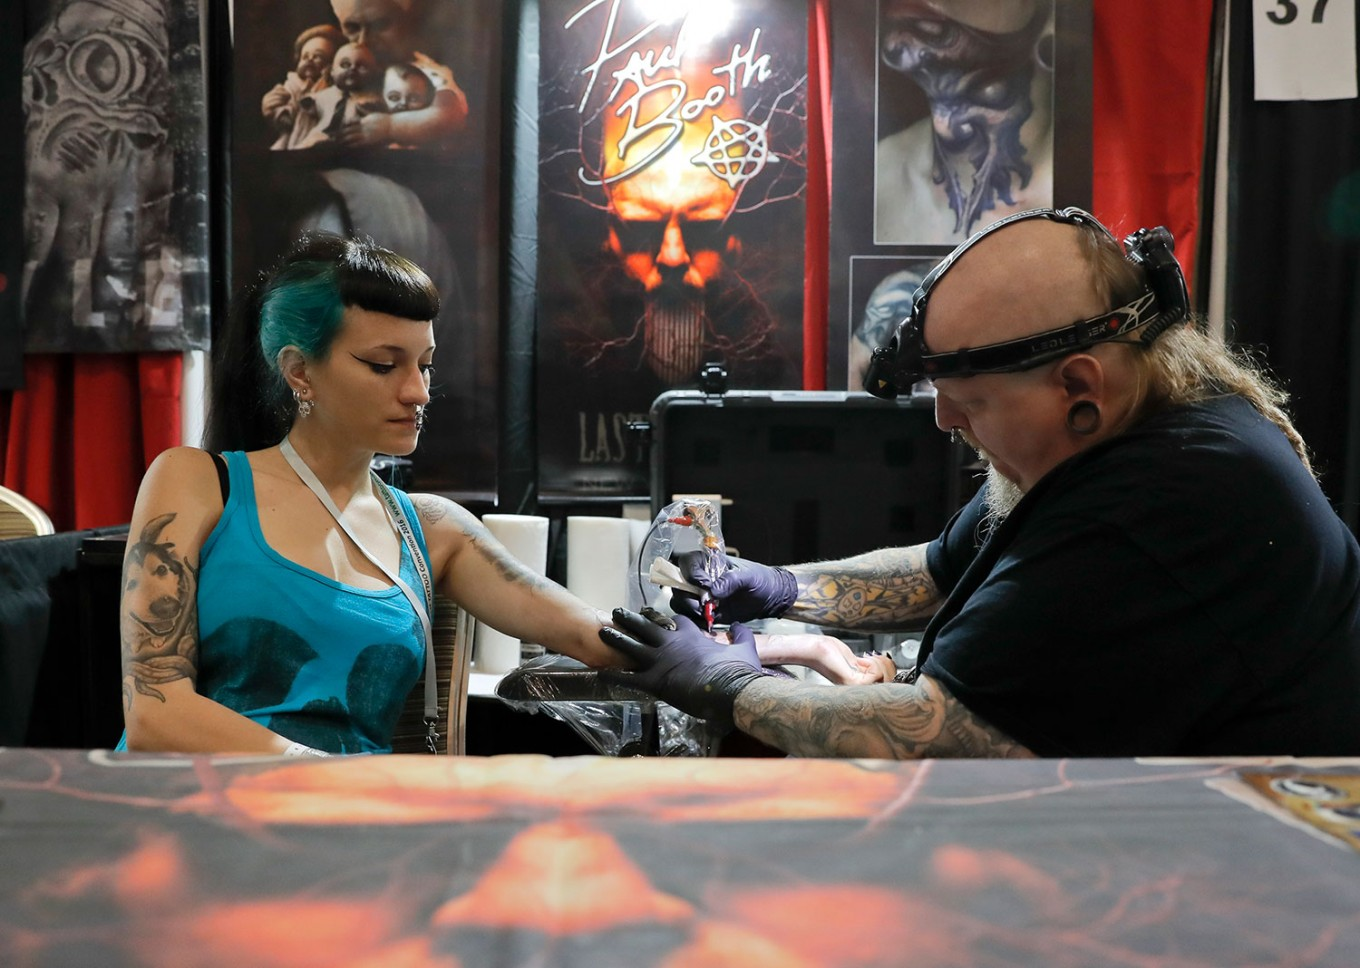 In this picture taken on Sunday, Oct. 16, 2016, Paul Booth of the U.S., one of the world's most famous tattoo artists, works during the International Tattoo Convention Bucharest 2016 in Bucharest, Romania. More than 100 tattoo and piercing artists brought their skills and art to a three-day convention in the Romanian capital. AP Photo/Vadim Ghirda